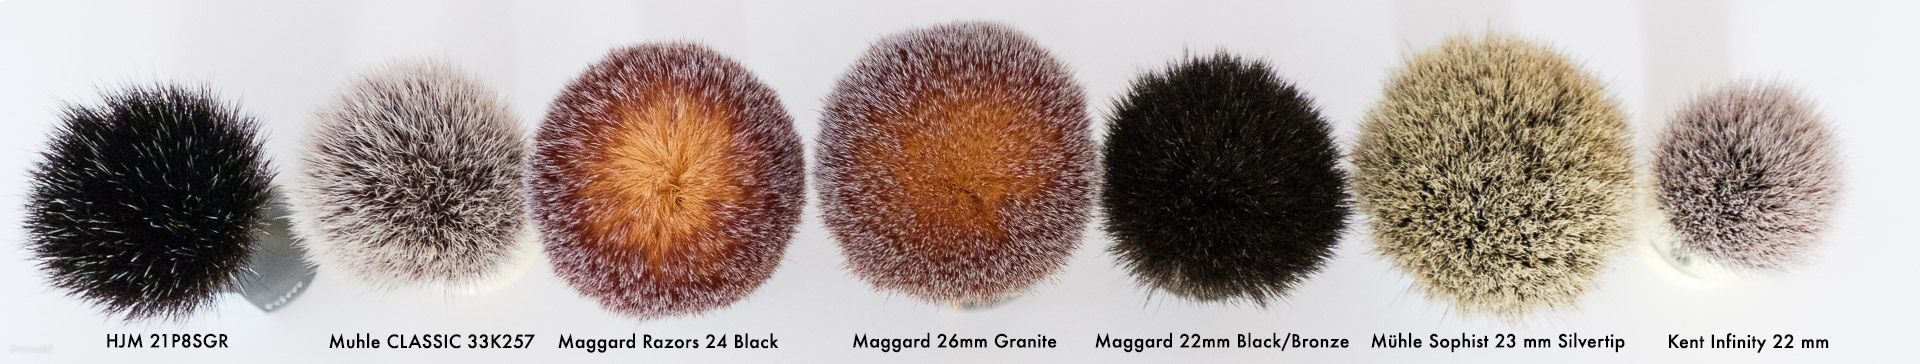 maggard-brush-synthetic-22-comparison-above-all-napisy